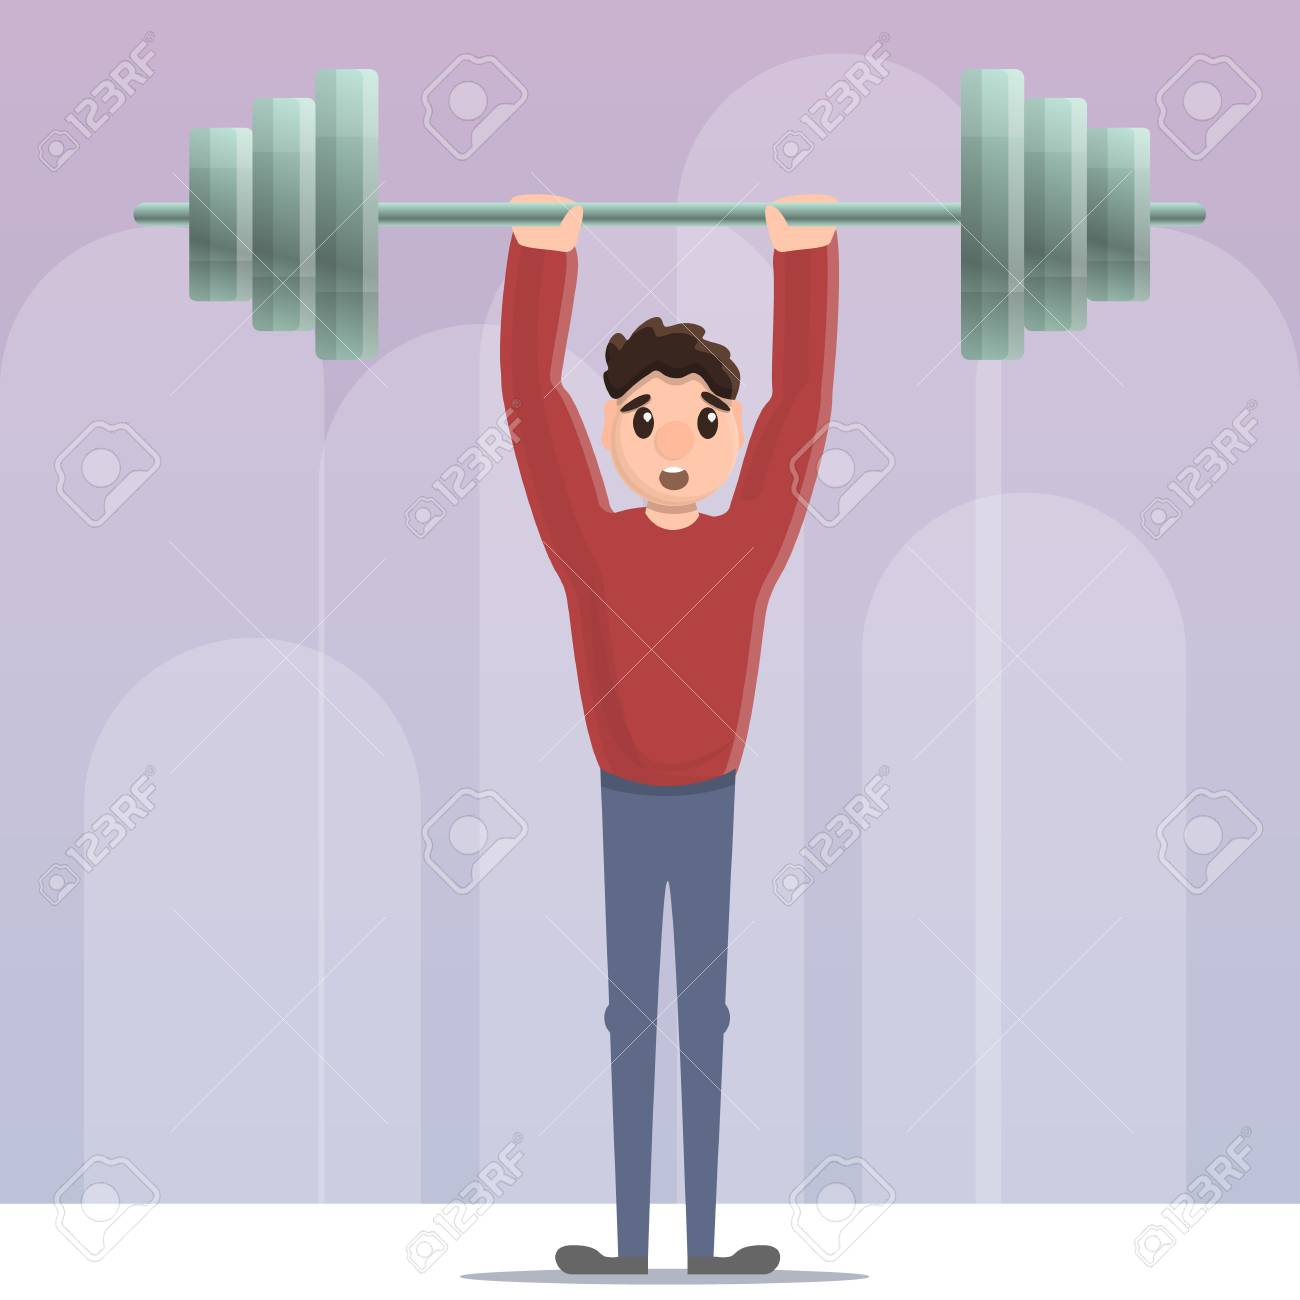 Sportsman Dumbbell Up Concept Background Cartoon Illustration 1300x1300